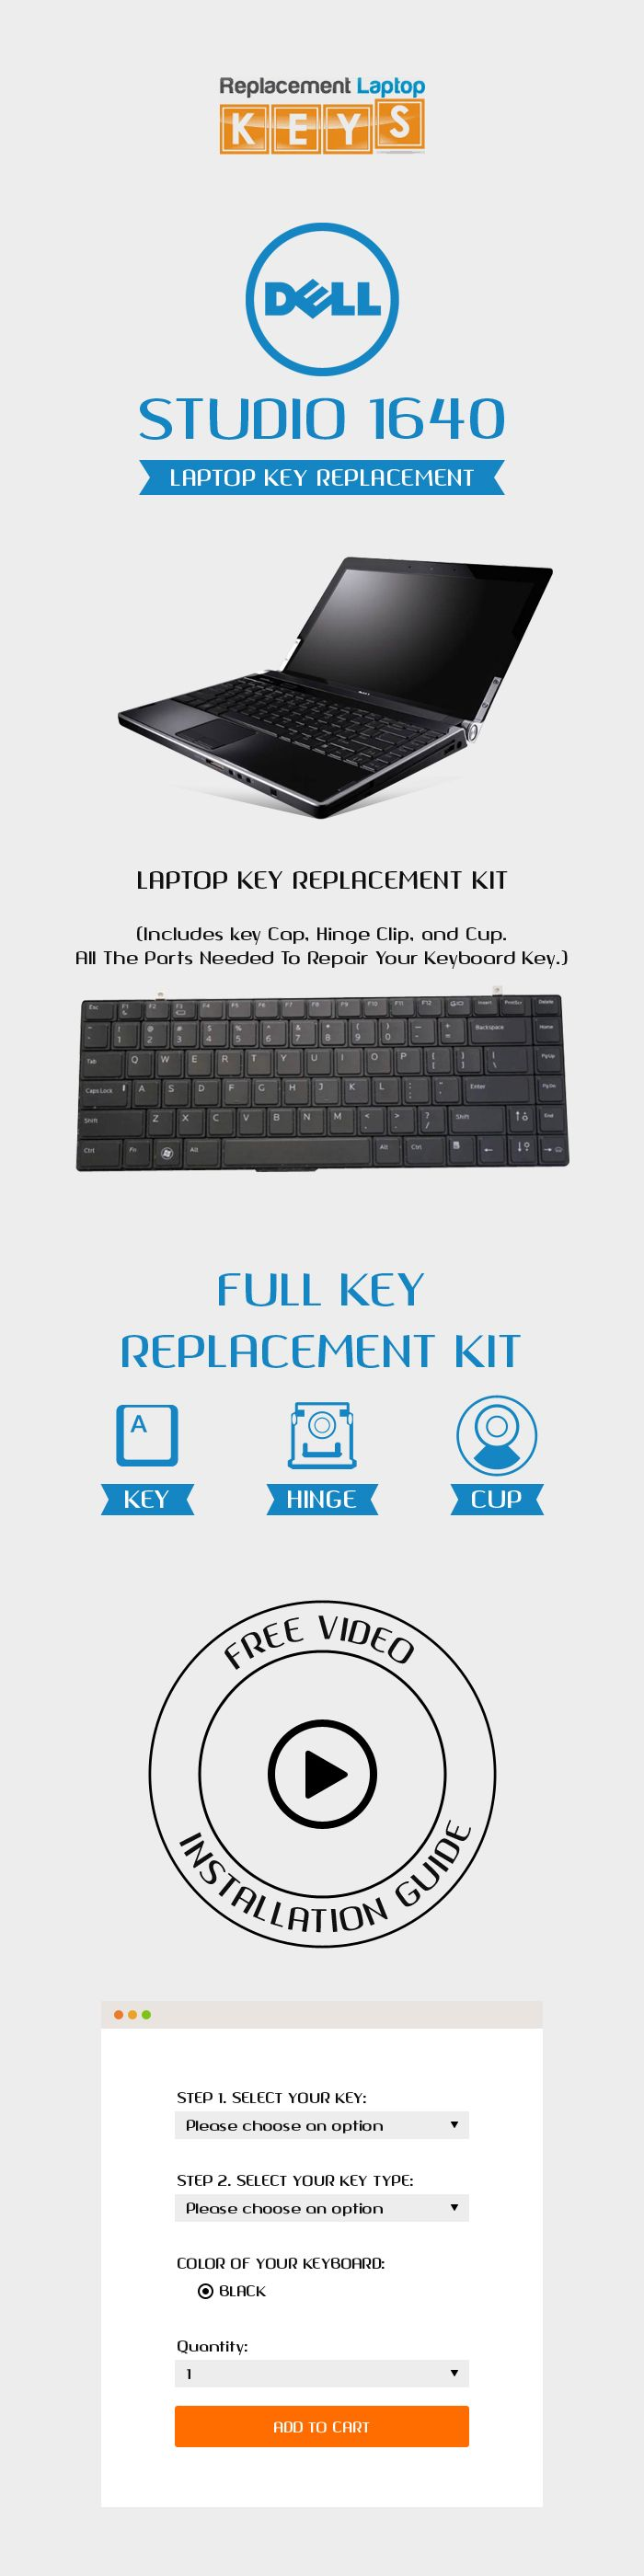 Replacement Laptop Keys is a leading online store of laptop keys, offers quality replacement keys for your Dell Studio 1640 Laptop. Here, you can buy with confidence because we provide fast delivery and secure shipping to our customer. http://www.replacementlaptopkeys.com/dell-studio-1640-laptop-key-replacement/